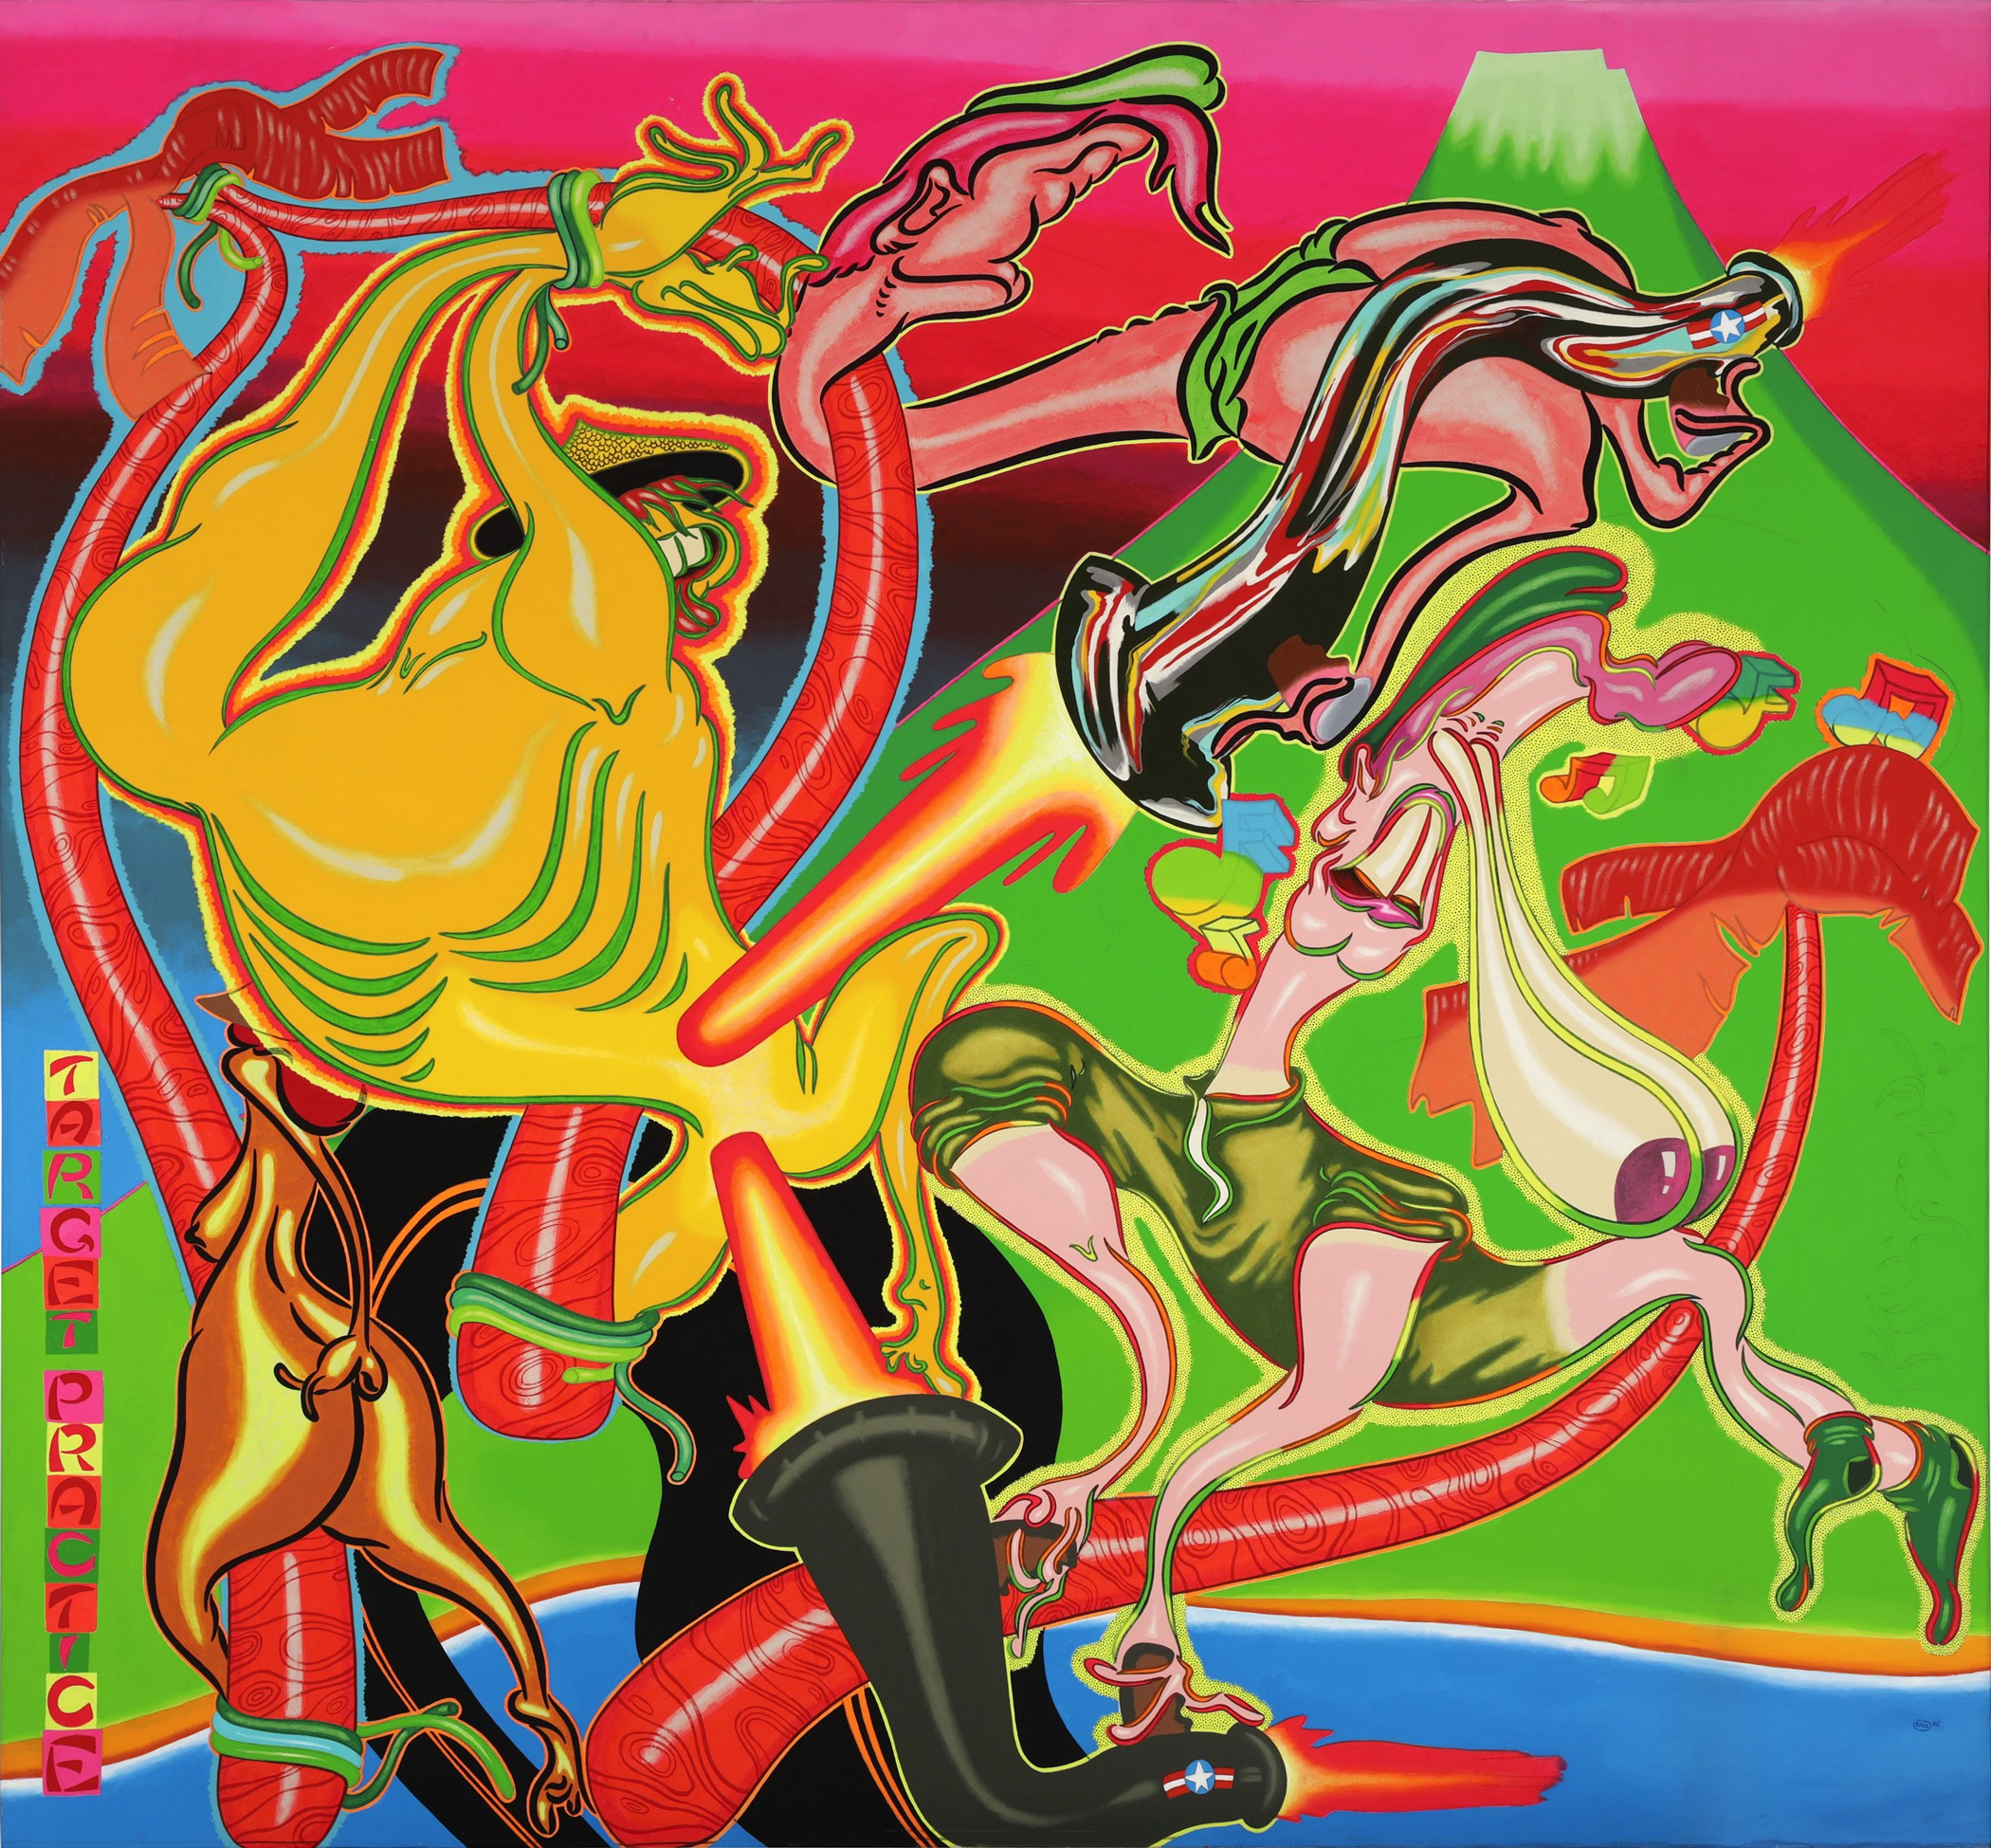 Peter Saul, Target Practice, 1968, acrylic on canvas, Hirshhorn Museum and Sculpture Garden, Smithsonian Institution, Joseph